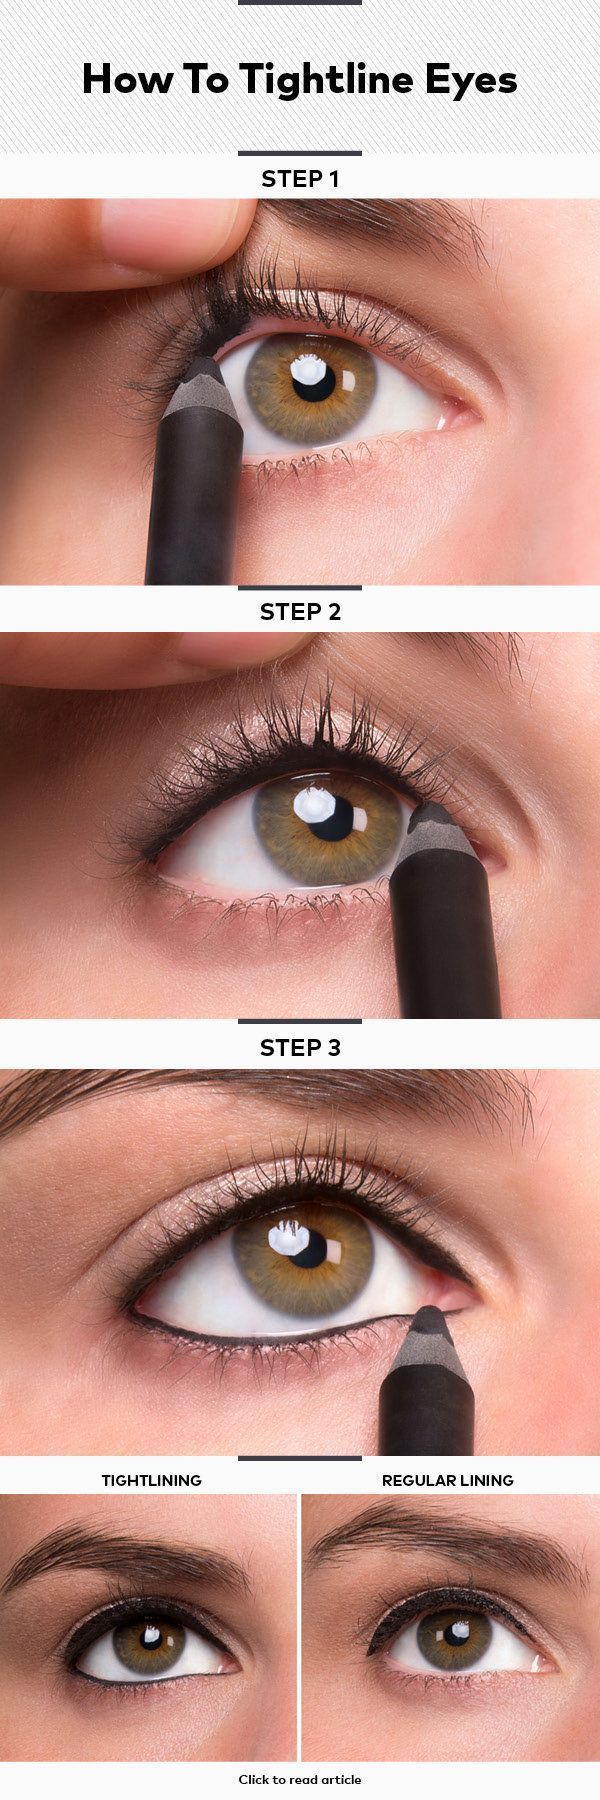 9 Super Basic Eye Makeup Ideas for Beginners - Pretty Designs